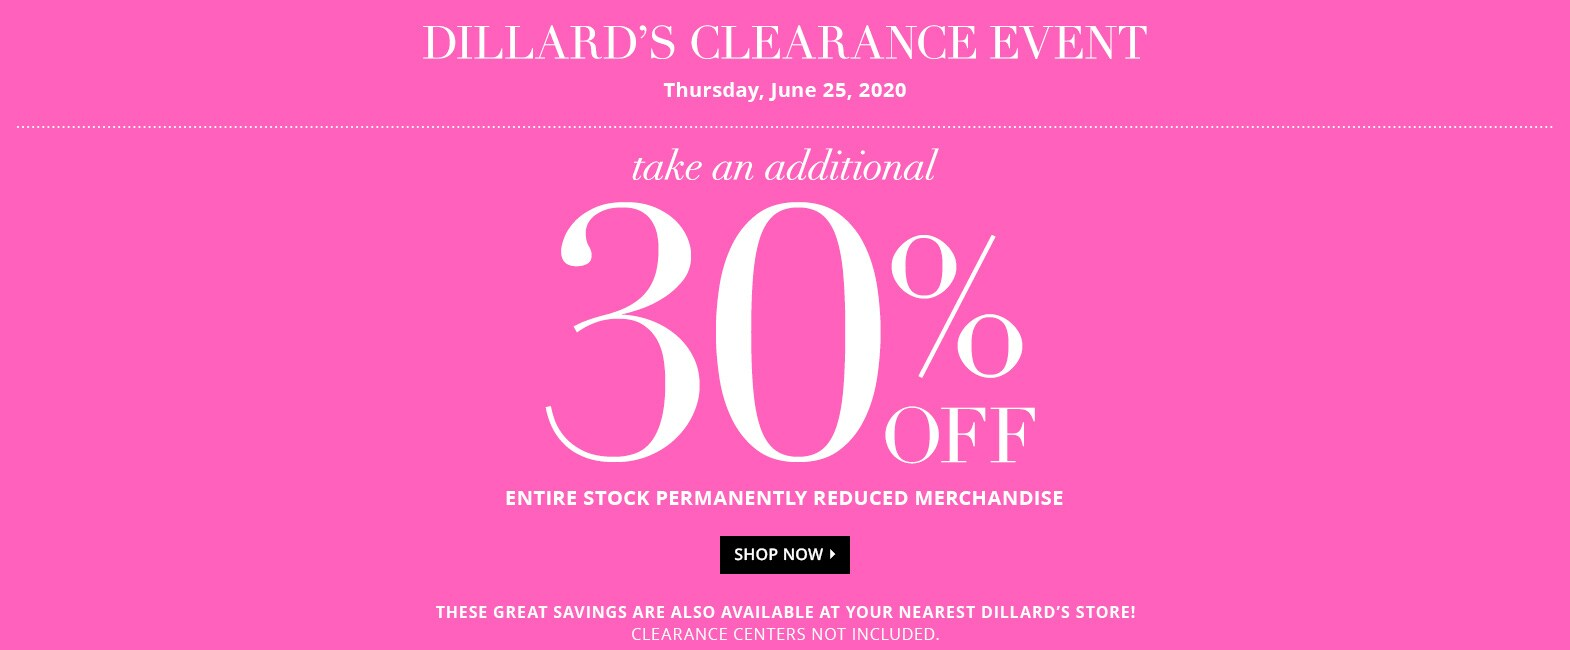 ec429a57b469e Dillard's - Official Site of Dillard's Department Stores - Dillards ...